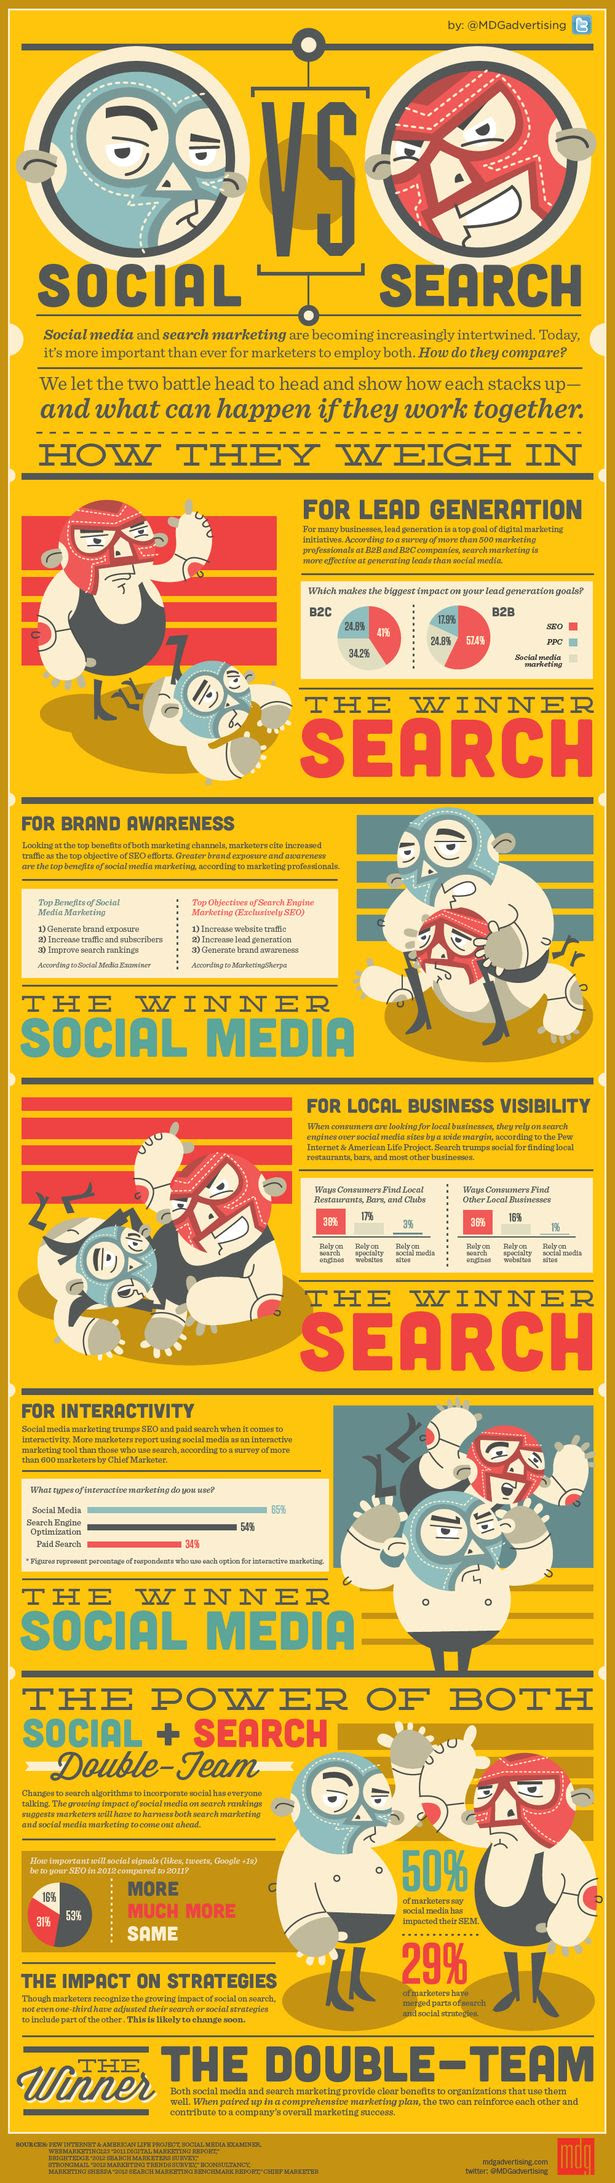 social vs search marketing infographic